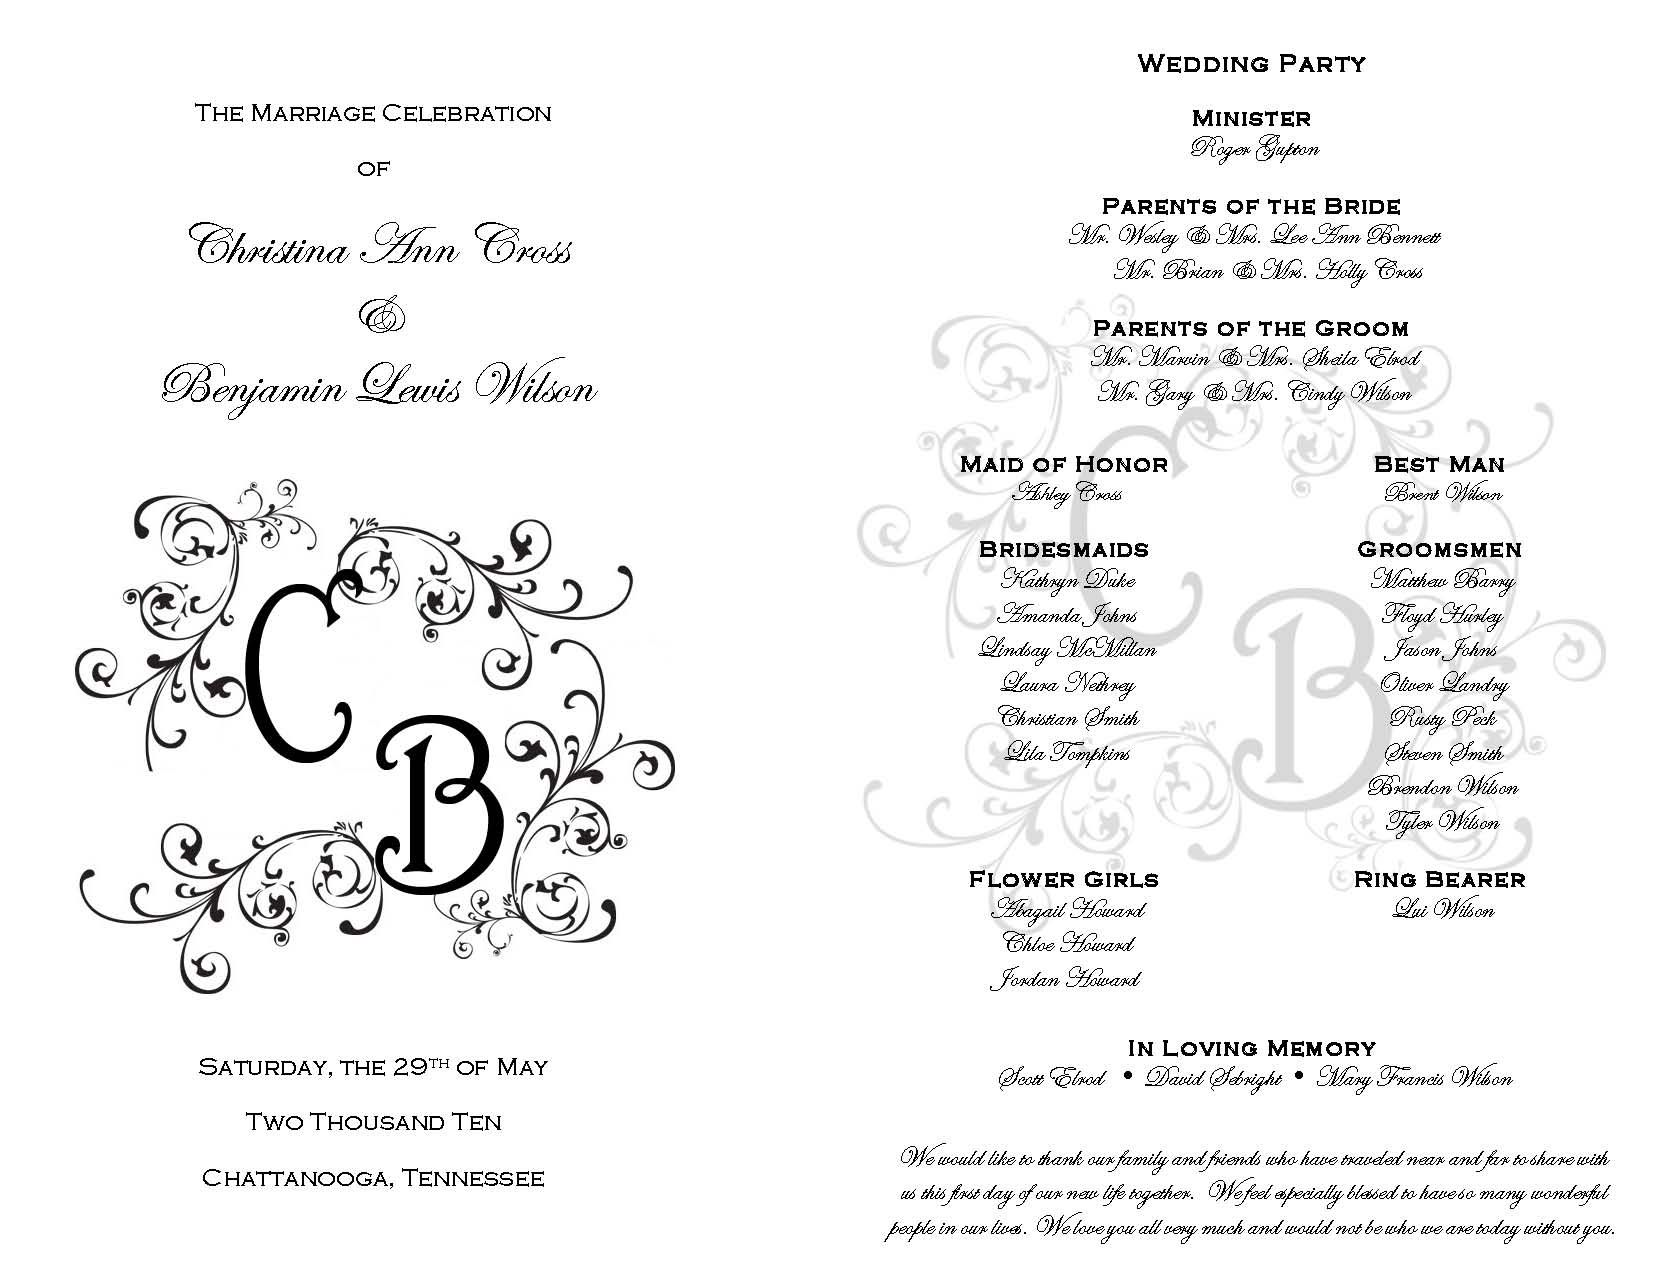 Printable wedding programs on pinterest free printable for Free wedding program templates